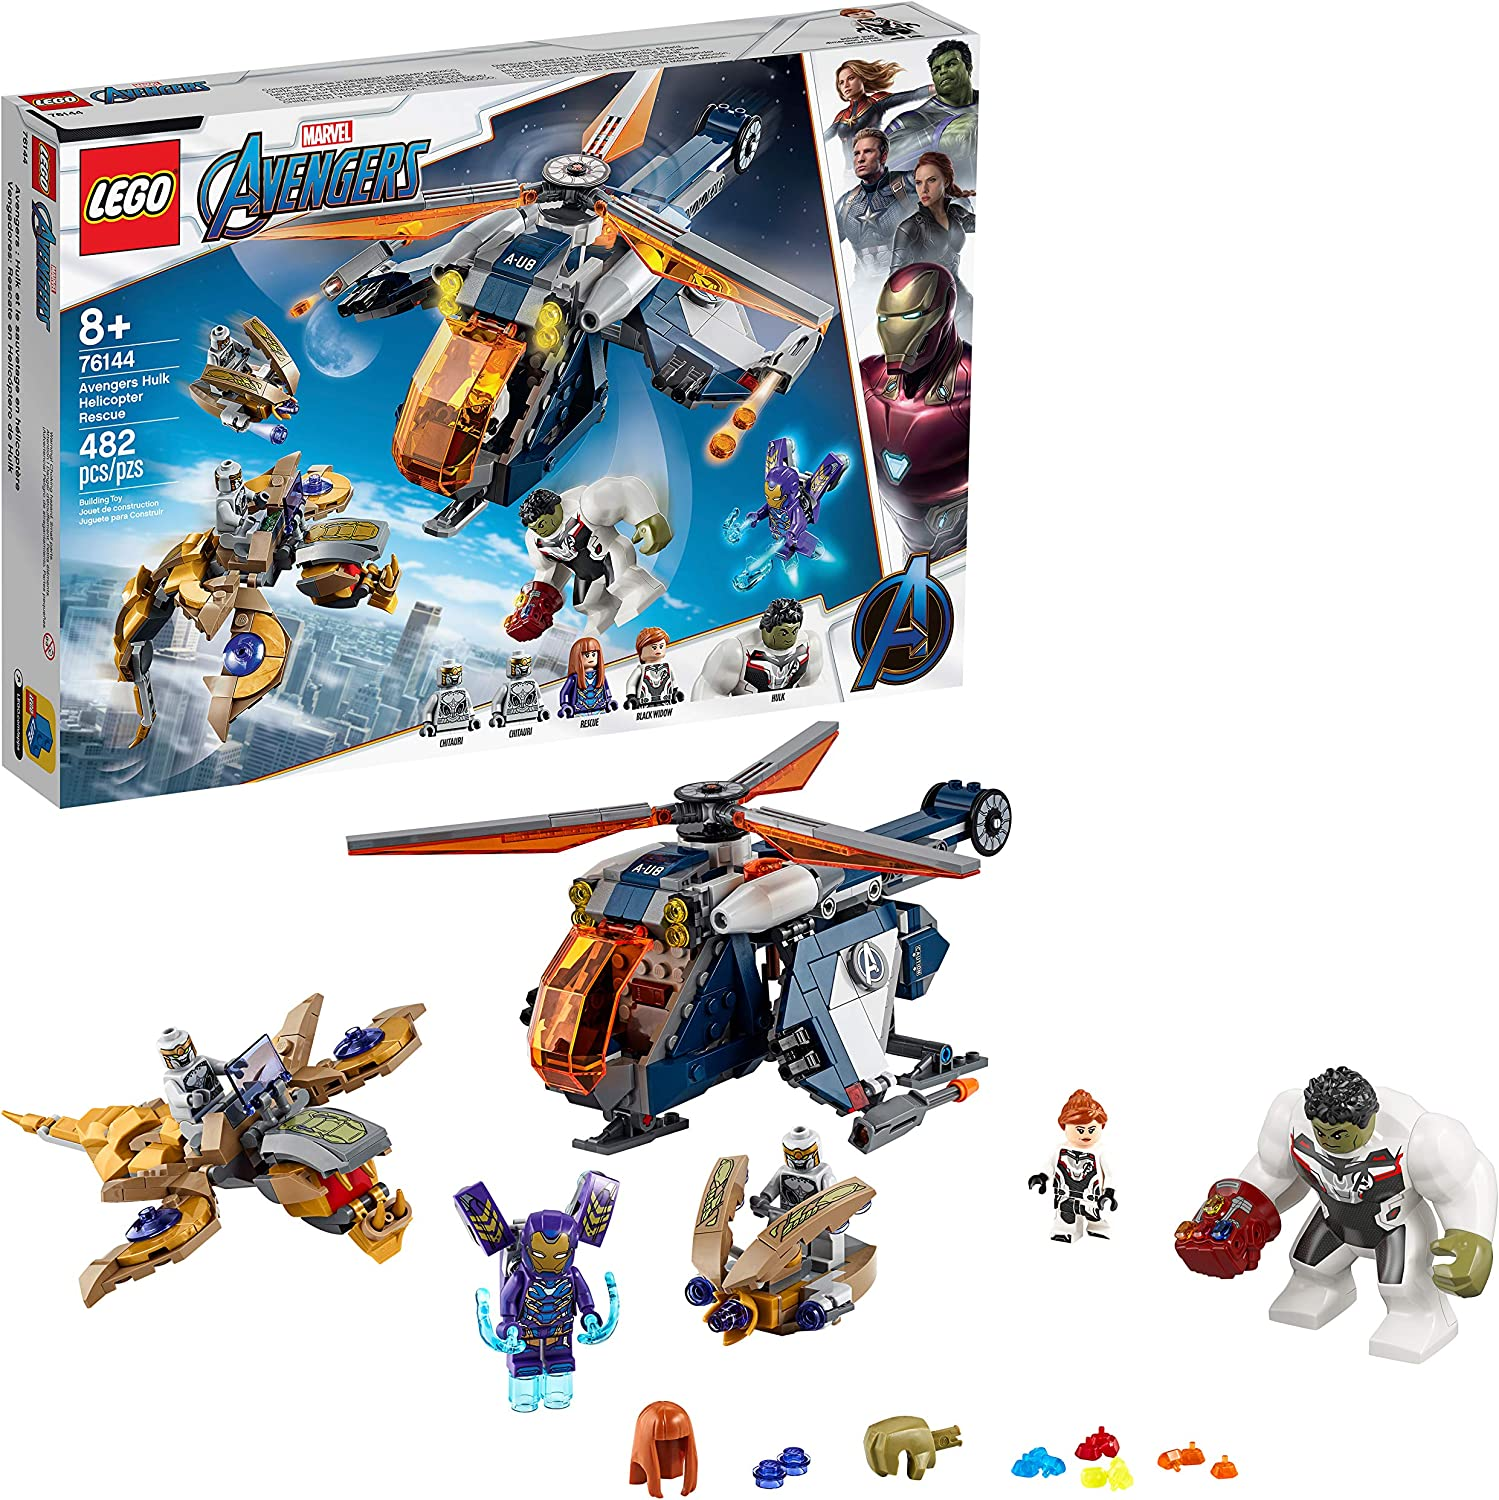 Amazon Com Lego Marvel Avengers Hulk Helicopter Rescue 76144 Building Kit 482 Pieces Multi Toys Games